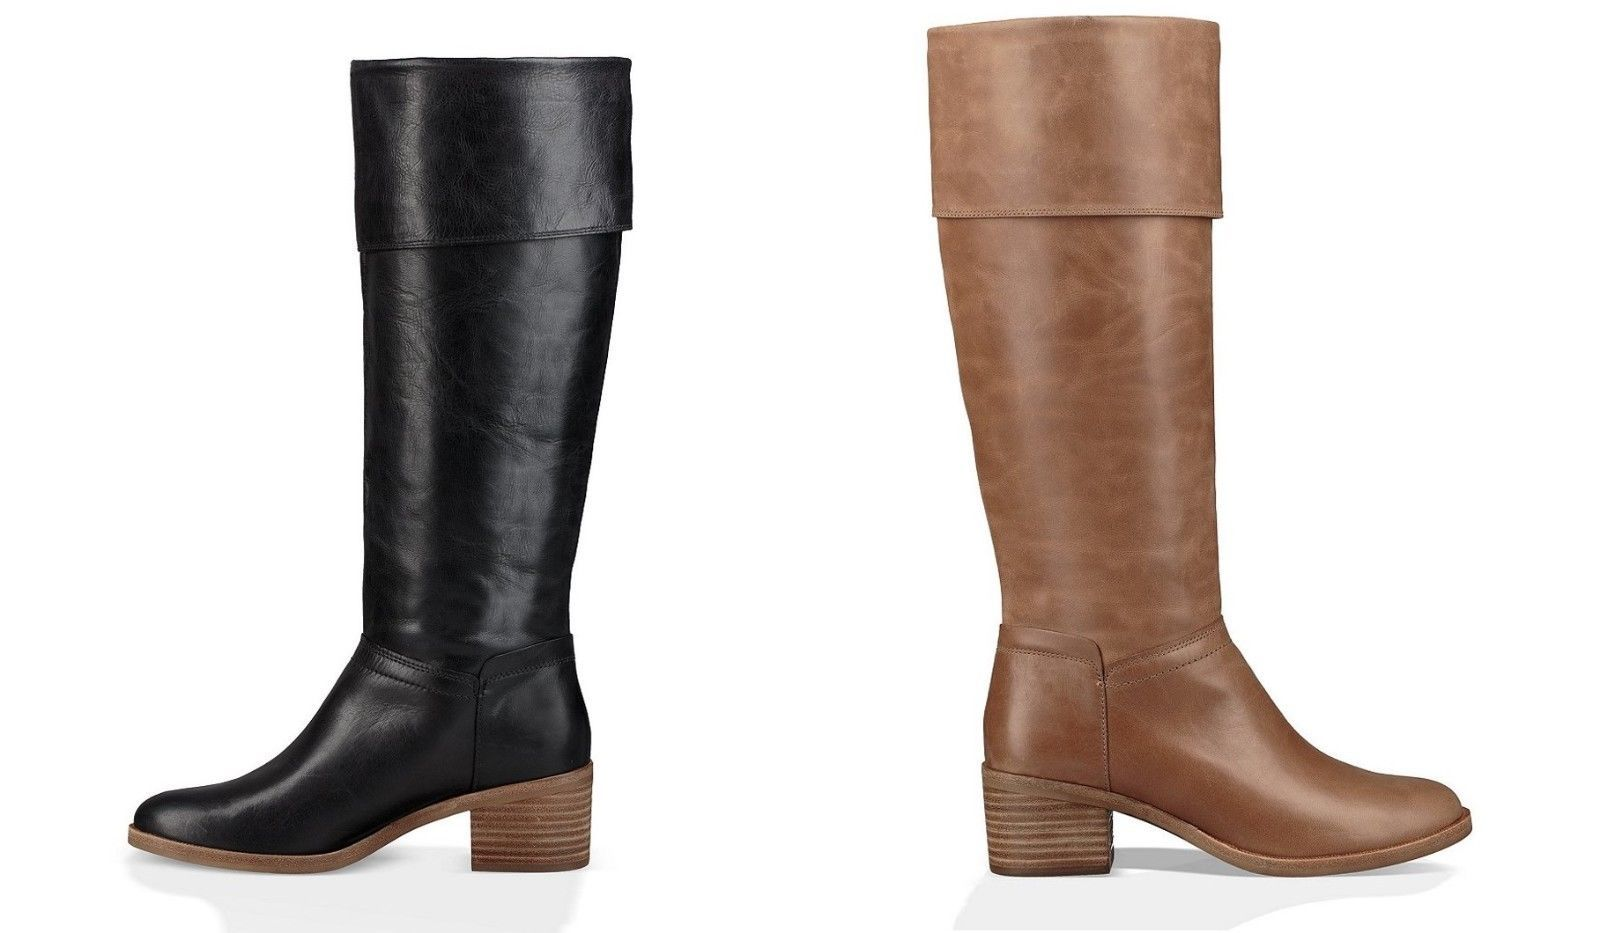 UGG Carlin Block Heel Leather Tall Boots in US Women's Size 8 Taupe/Size 7 Black - $189.00